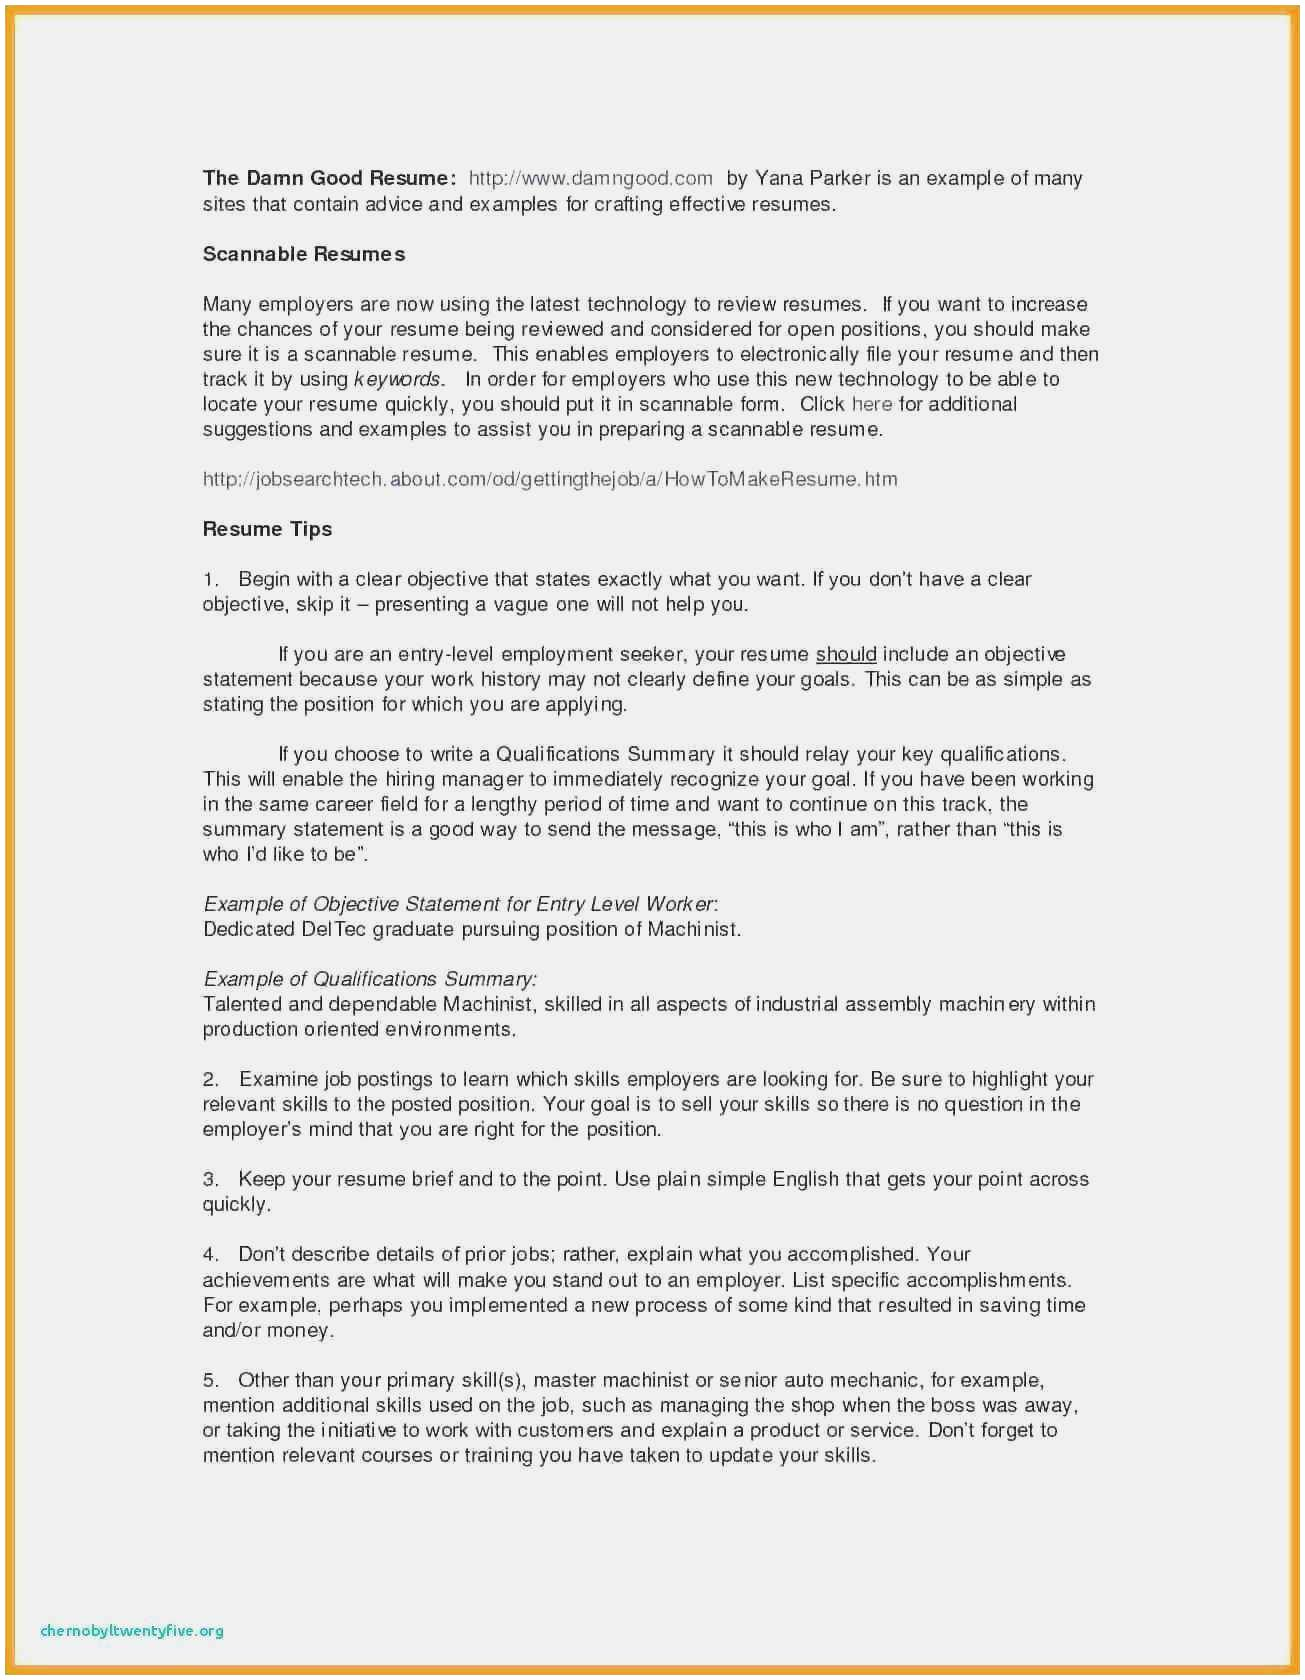 Harvard Business Review Magazine Free Download Download 55 Harvard Resume Template Download